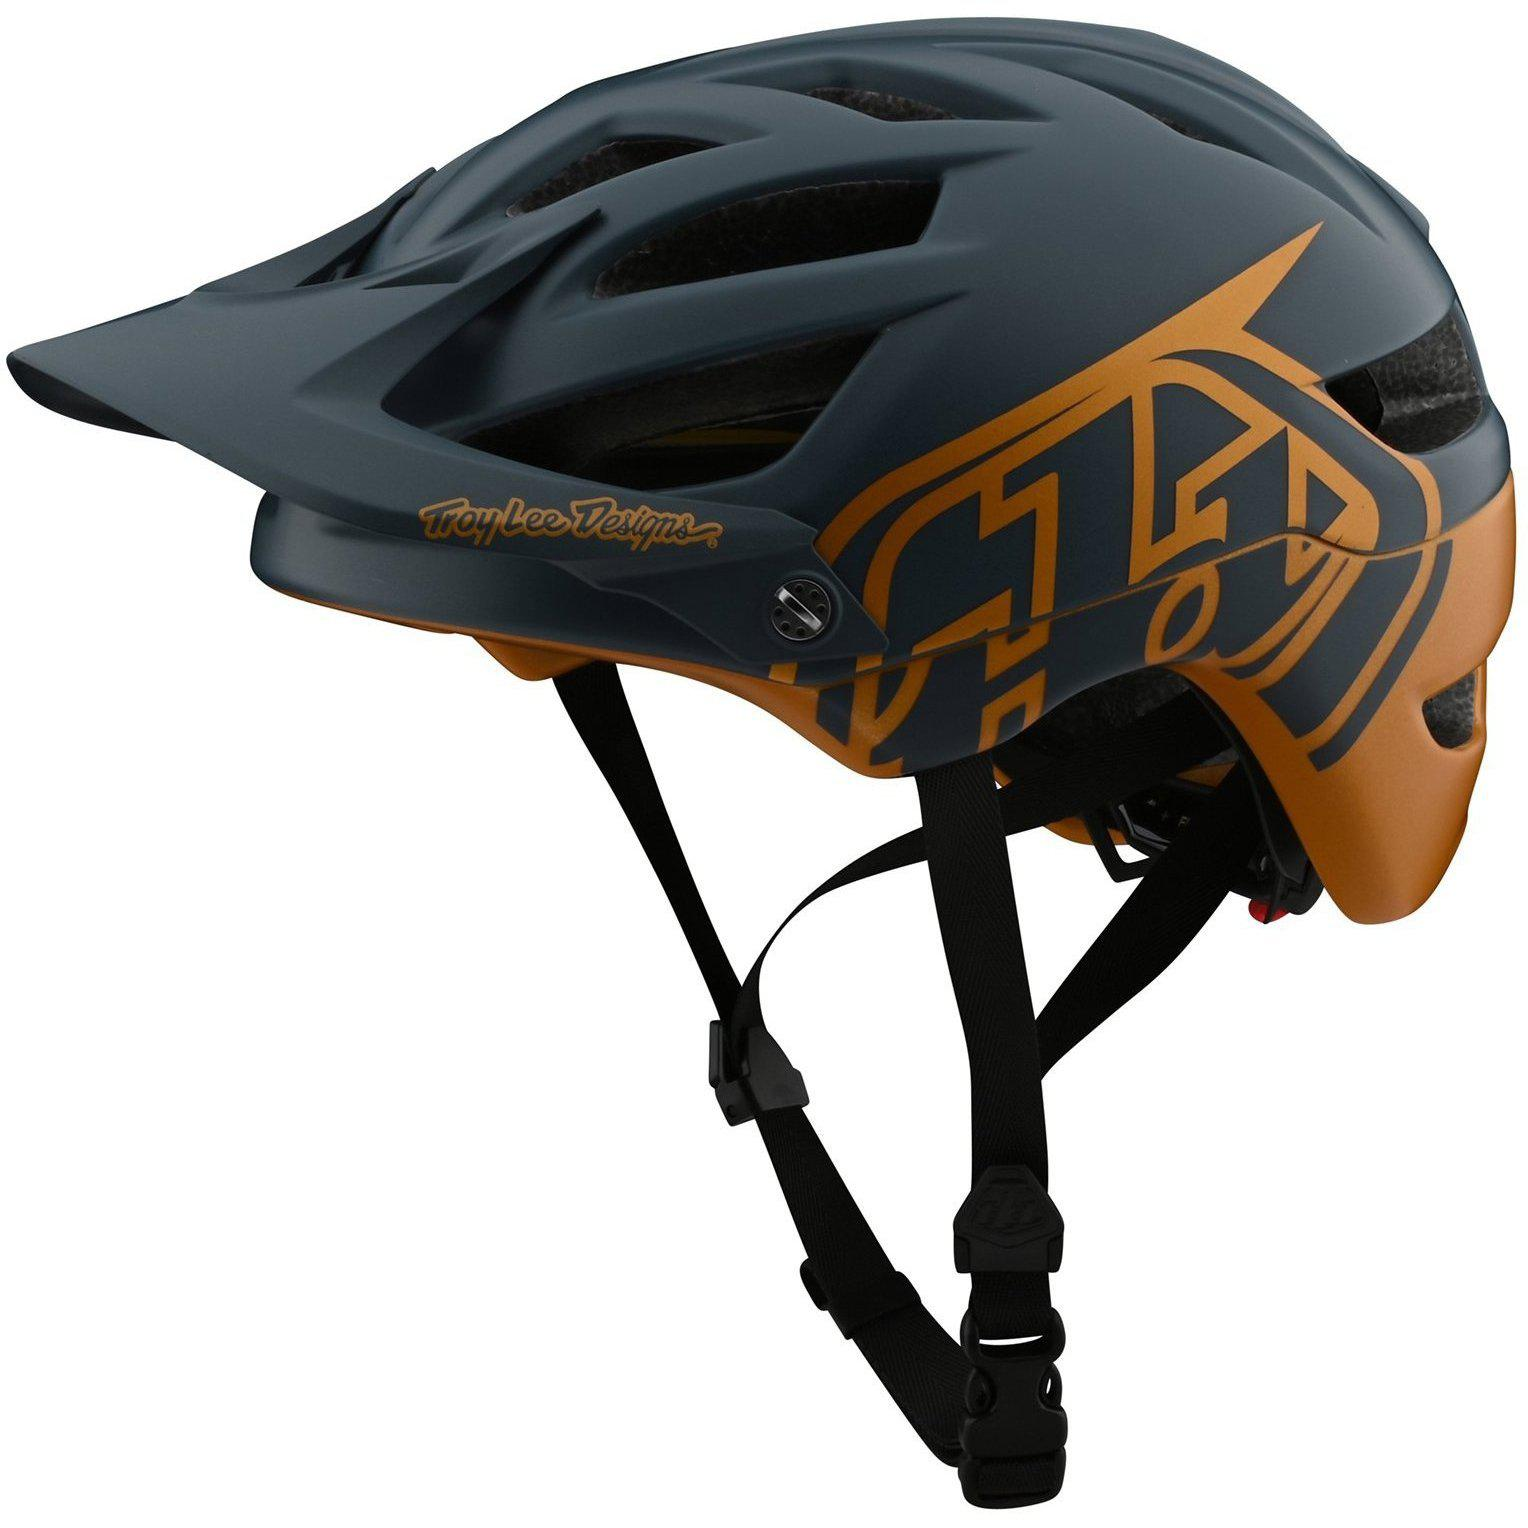 Troy Lee Designs-Troy Lee Designs A1 Classic MIPS Helmet-Classic - Gray/Gold-M/L-TLD190111143-saddleback-elite-performance-cycling